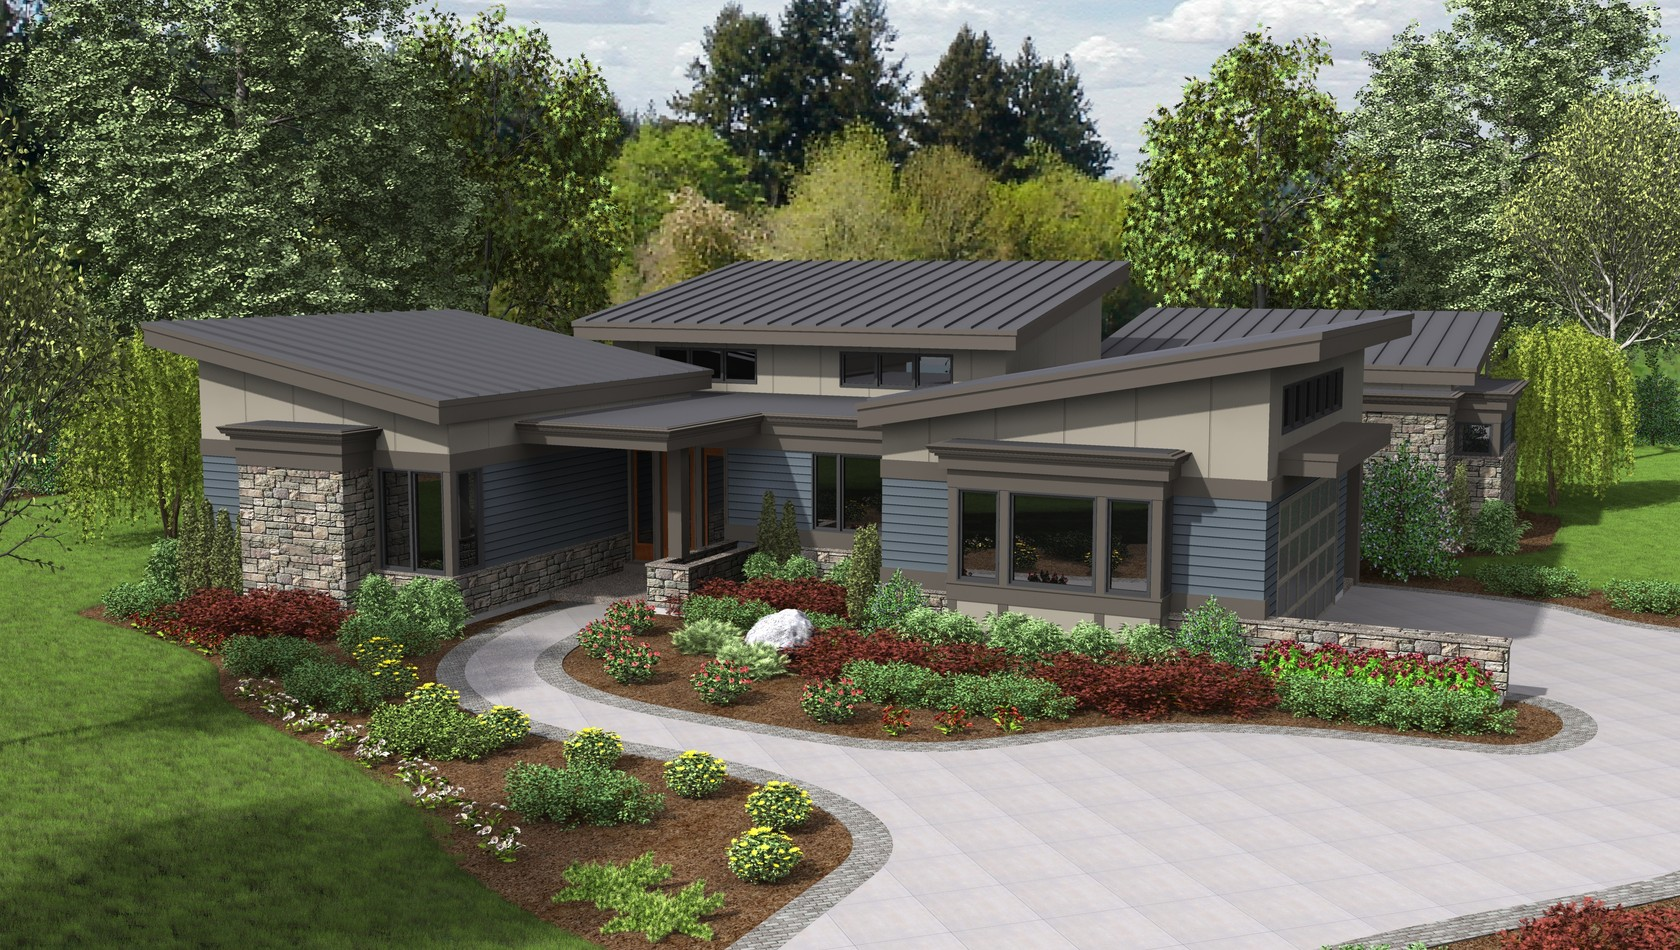 Main image for house plan 1242A: The Caprica